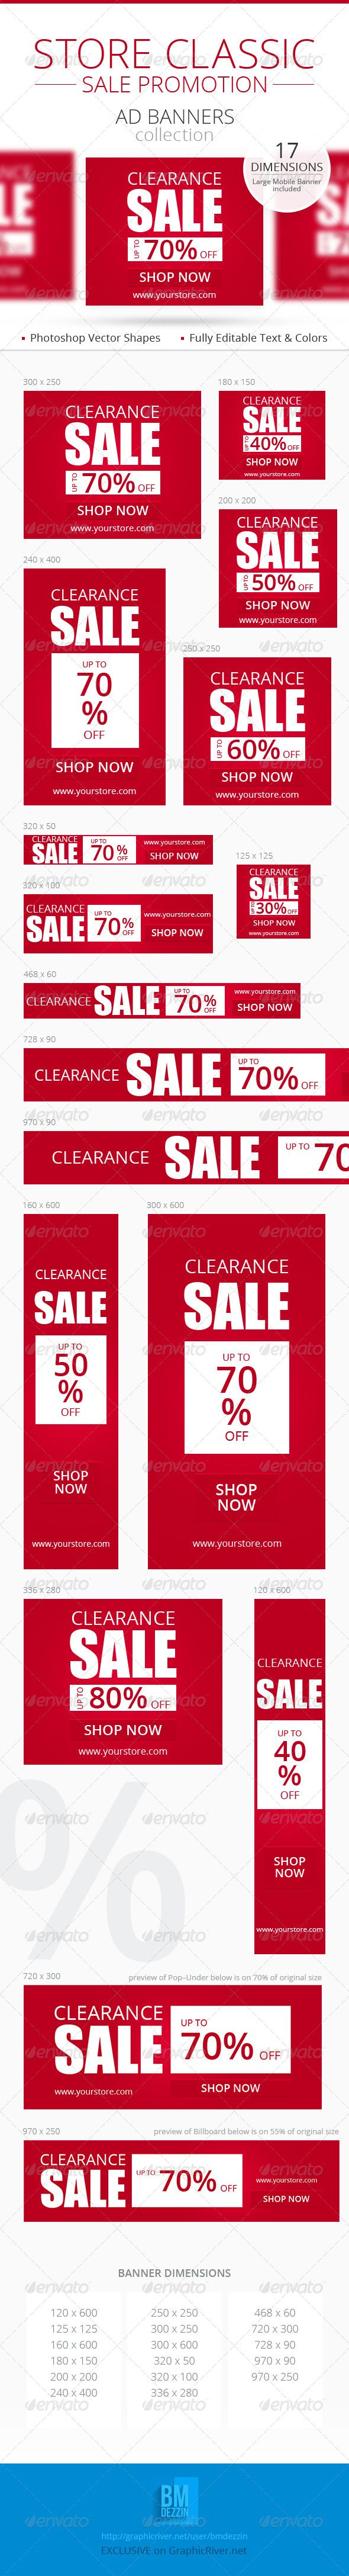 Store Classic Sale Promotion Web Ad Banners Template PSD | Buy and Download: http://graphicriver.net/item/store-classic-sale-promotion-web-ad-banners/6696242?WT.ac=category_thumb&WT.z_author=bmdezzin&ref=ksioks